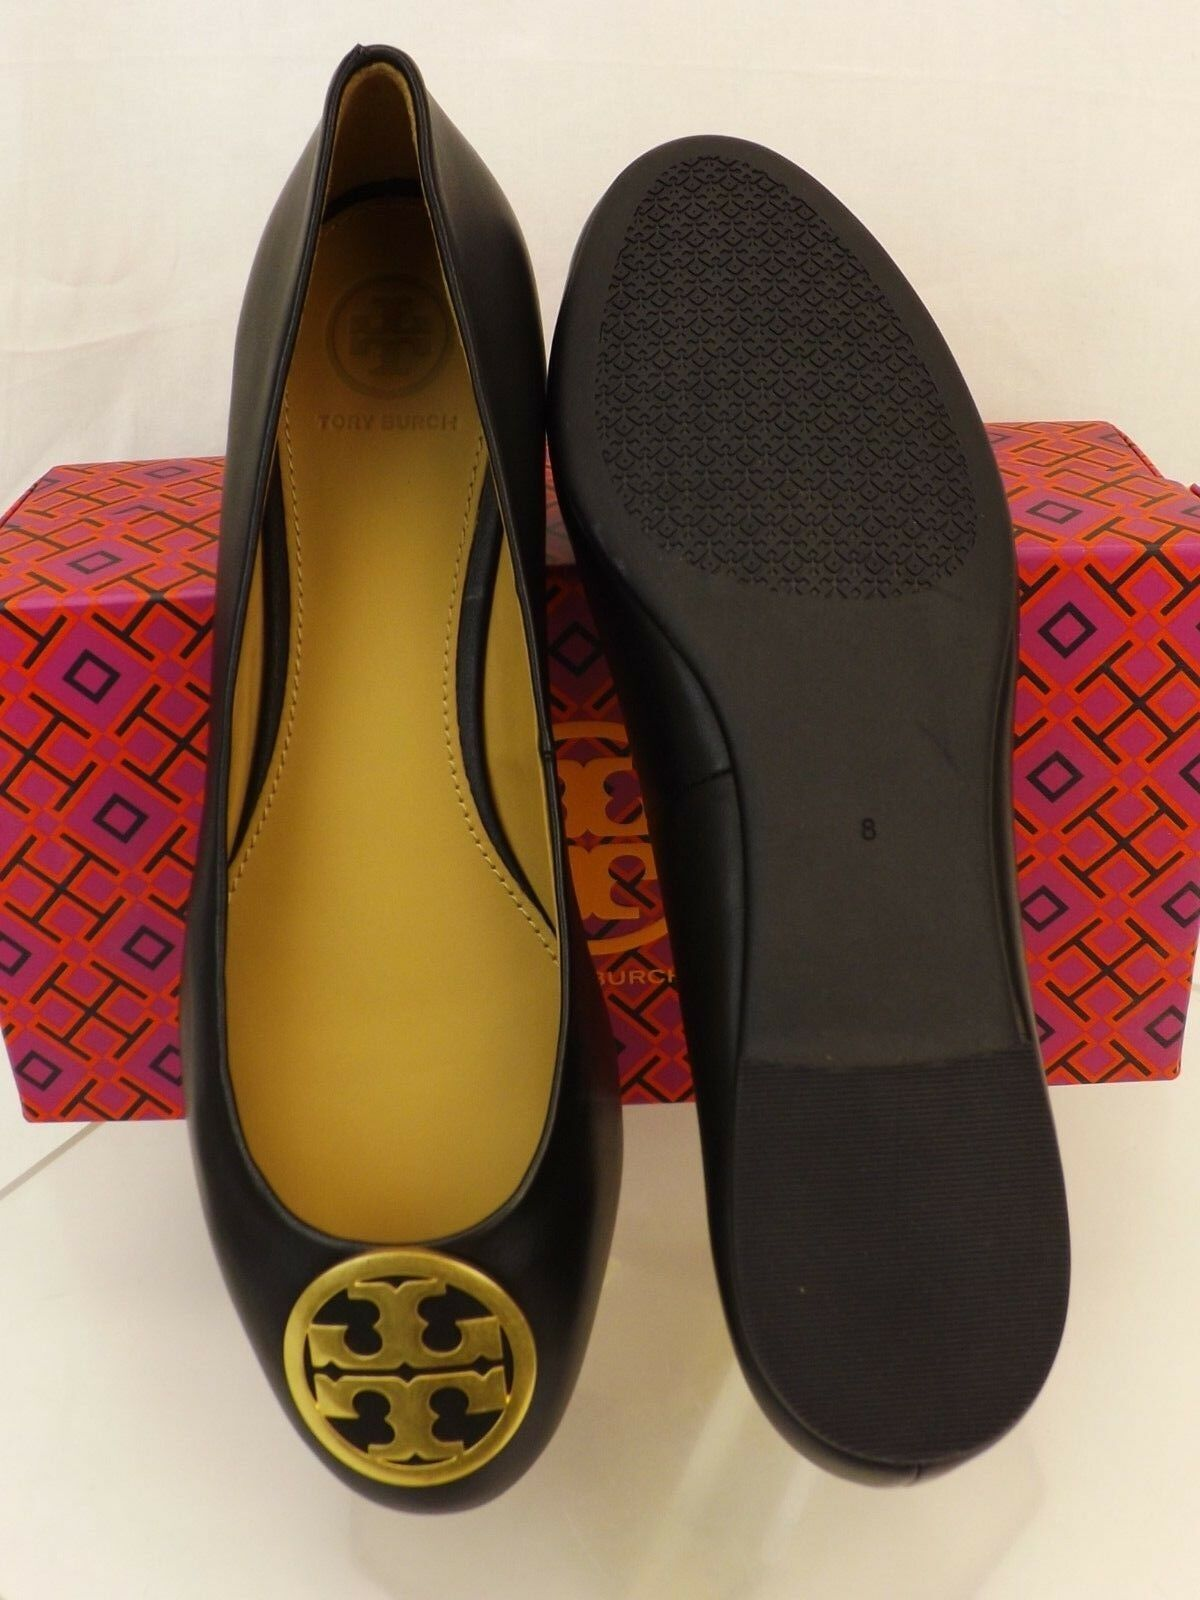 09bac92d3635 Tory Burch Benton Black Nappa Leather Gold Tone Reva Ballet Flats 9 for  sale online